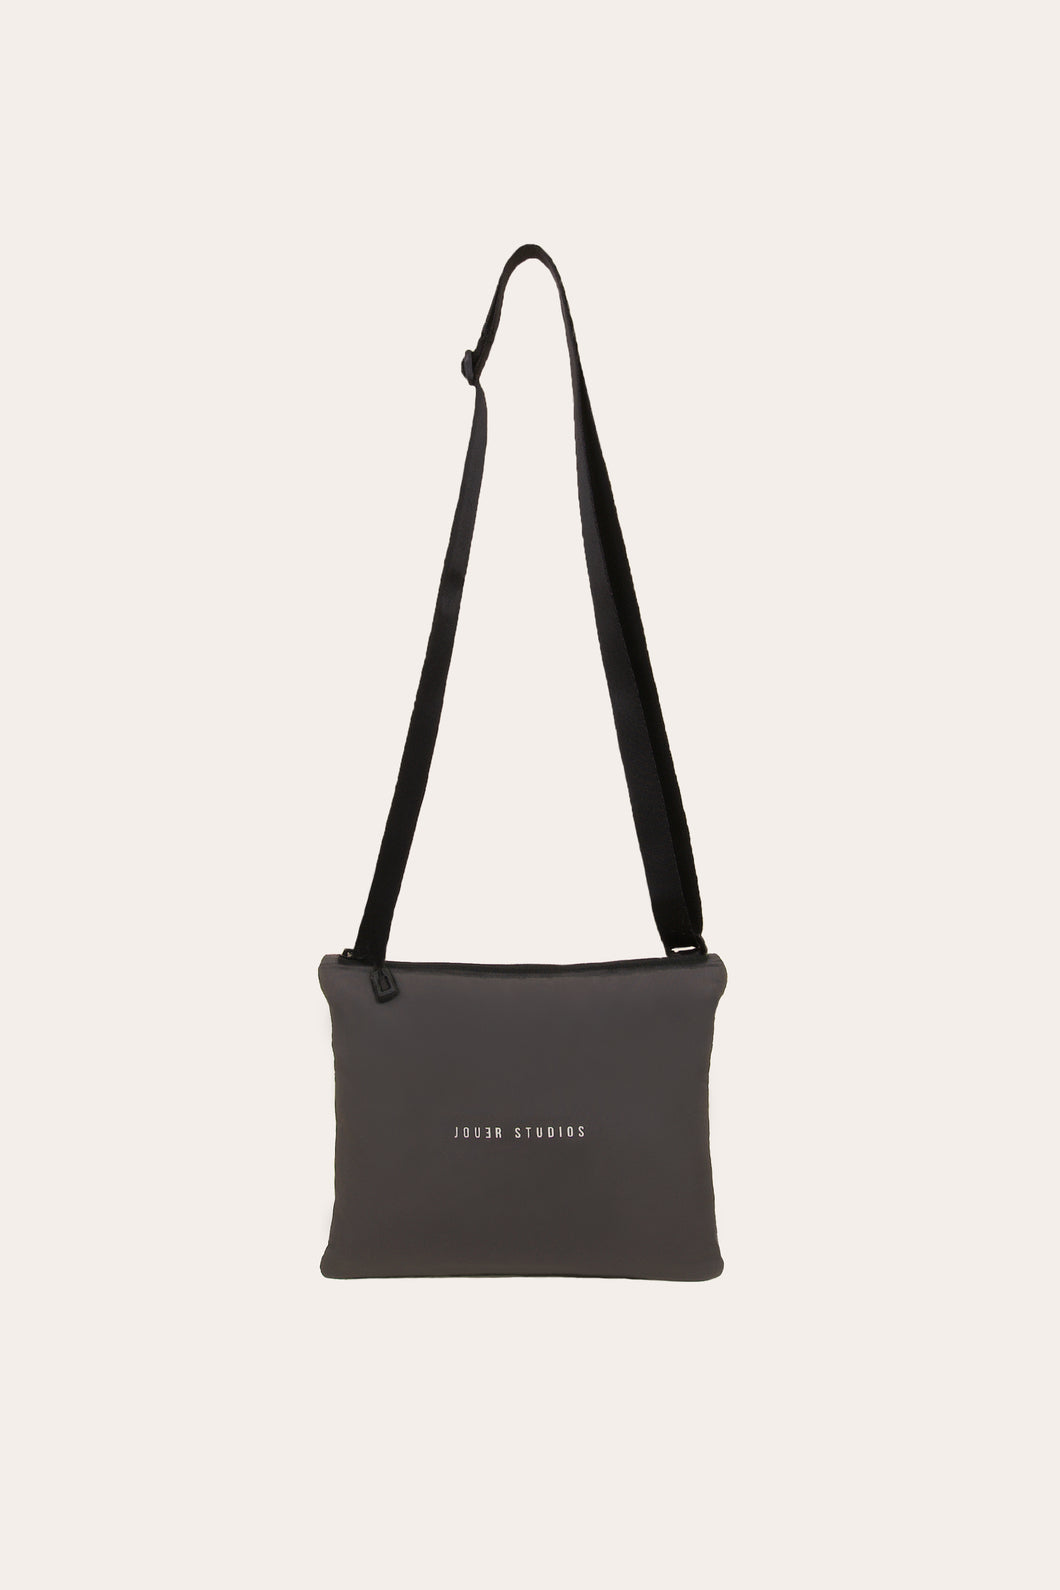 The Flat Pouch Soft Grey